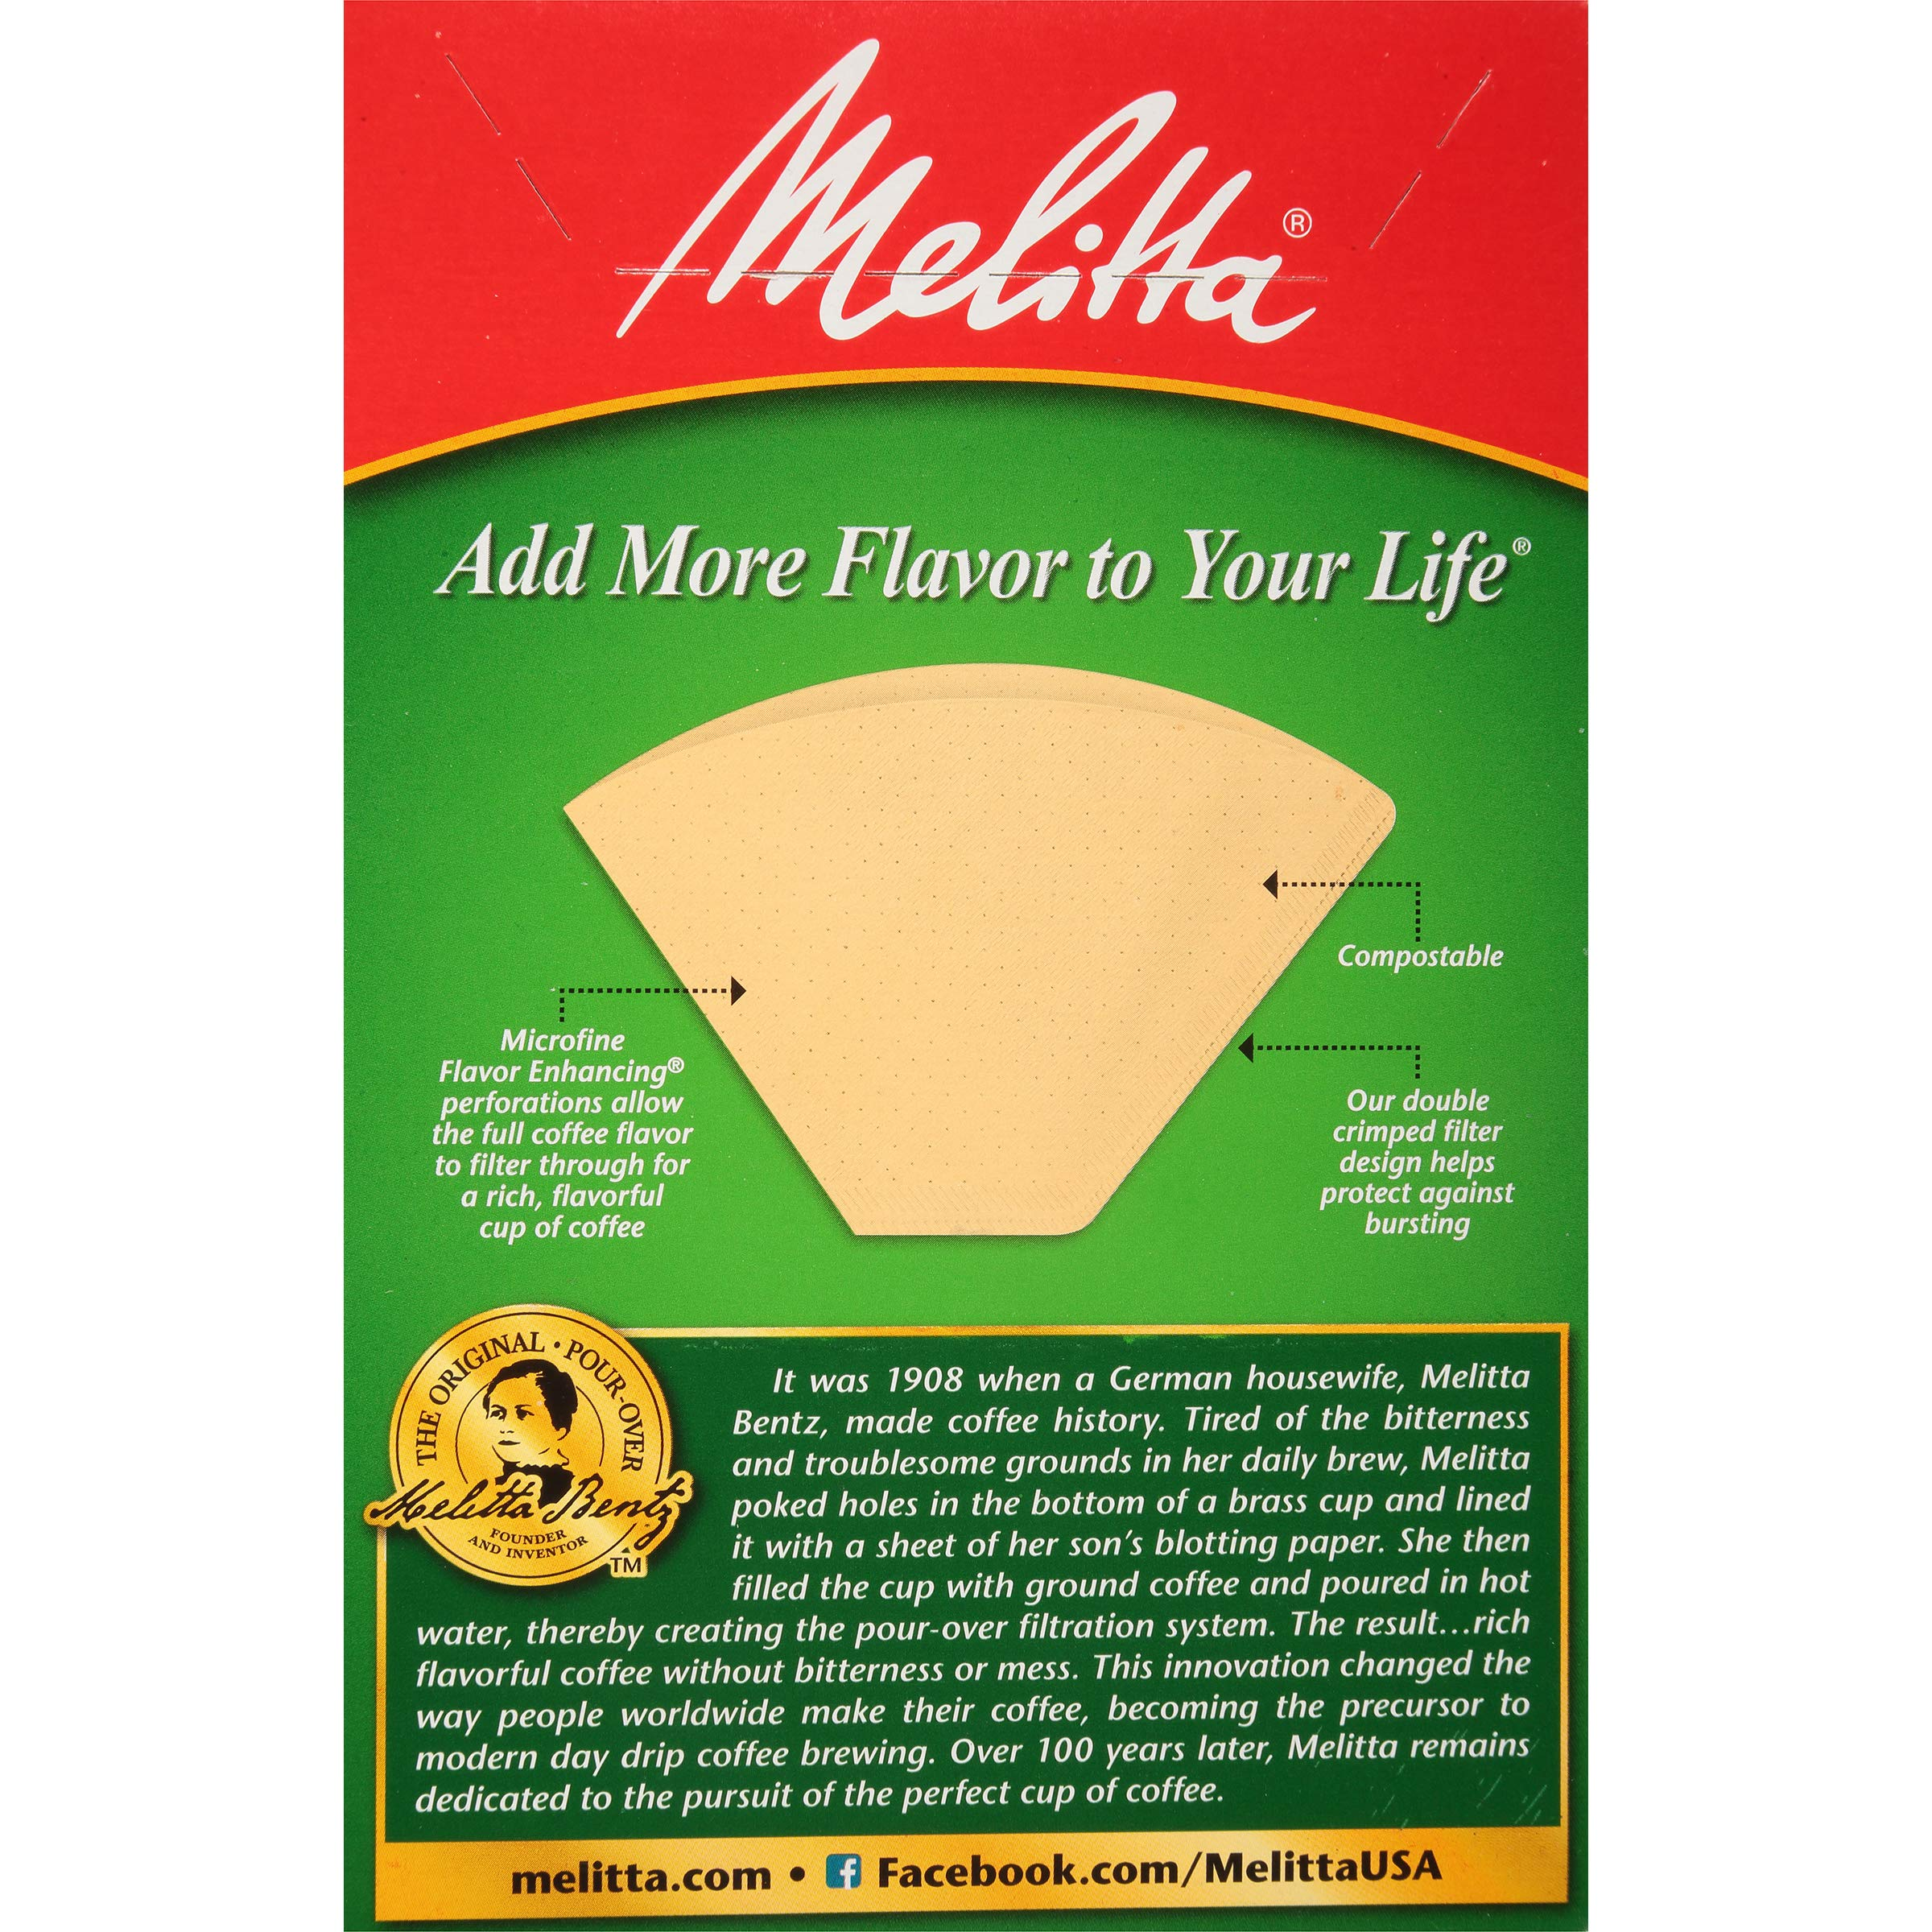 Melitta (62445C) Super Premium No. 4 Cone Coffee Filters, Natural Brown, 100 Count (Pack of 6) by Melitta (Image #4)